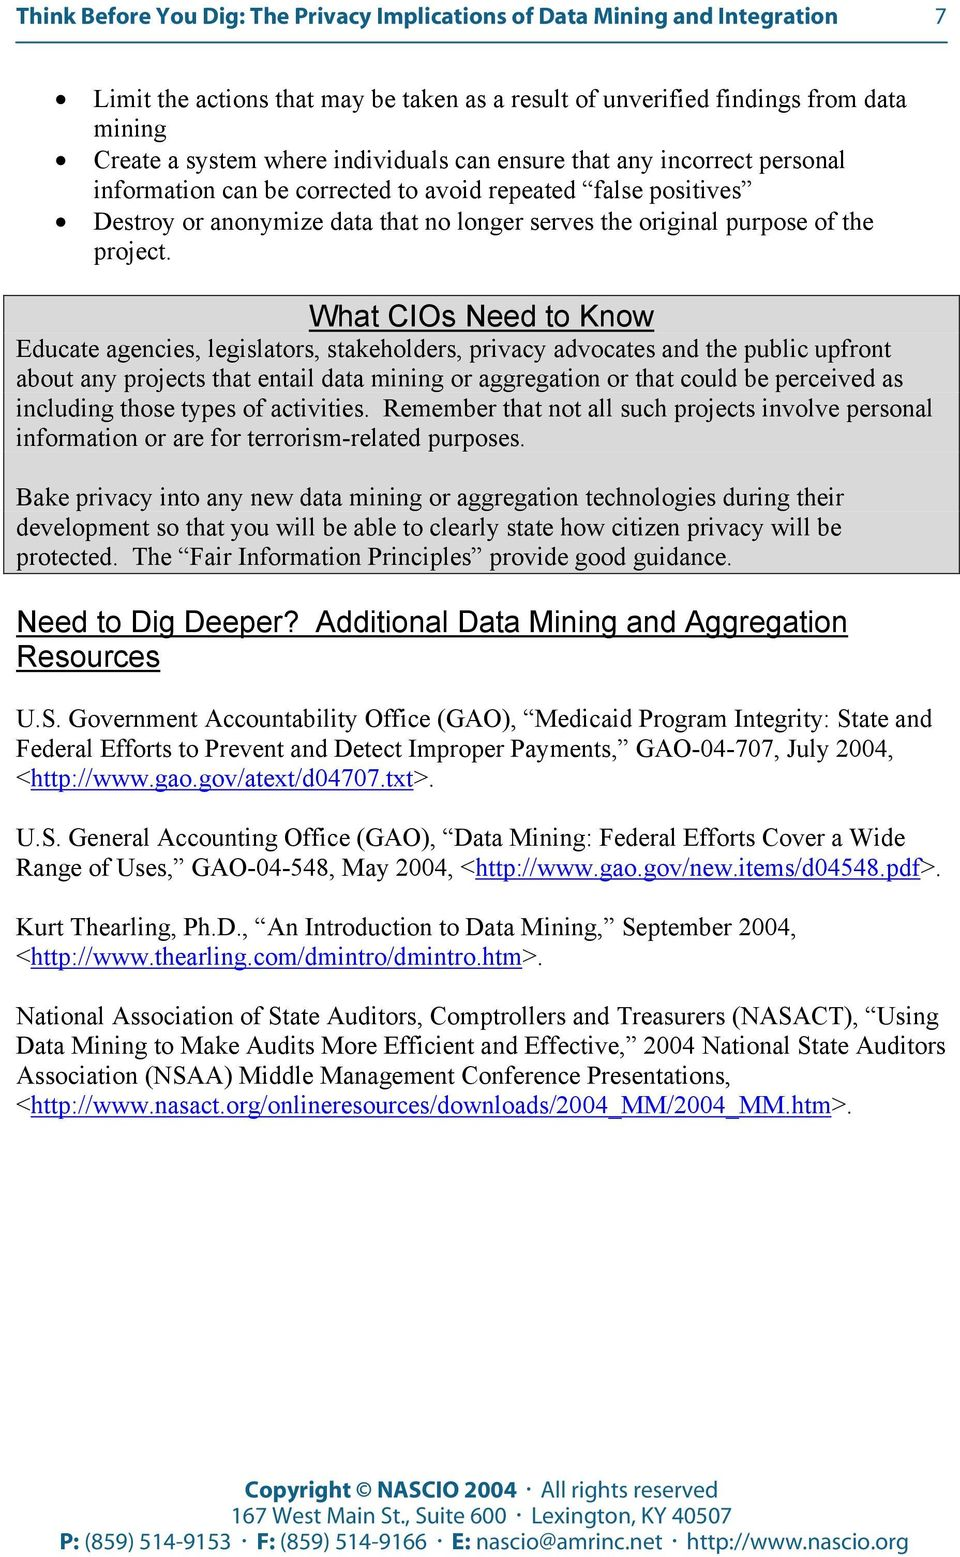 What CIOs Need to Know Educate agencies, legislators, stakeholders, privacy advocates and the public upfront about any projects that entail data mining or aggregation or that could be perceived as